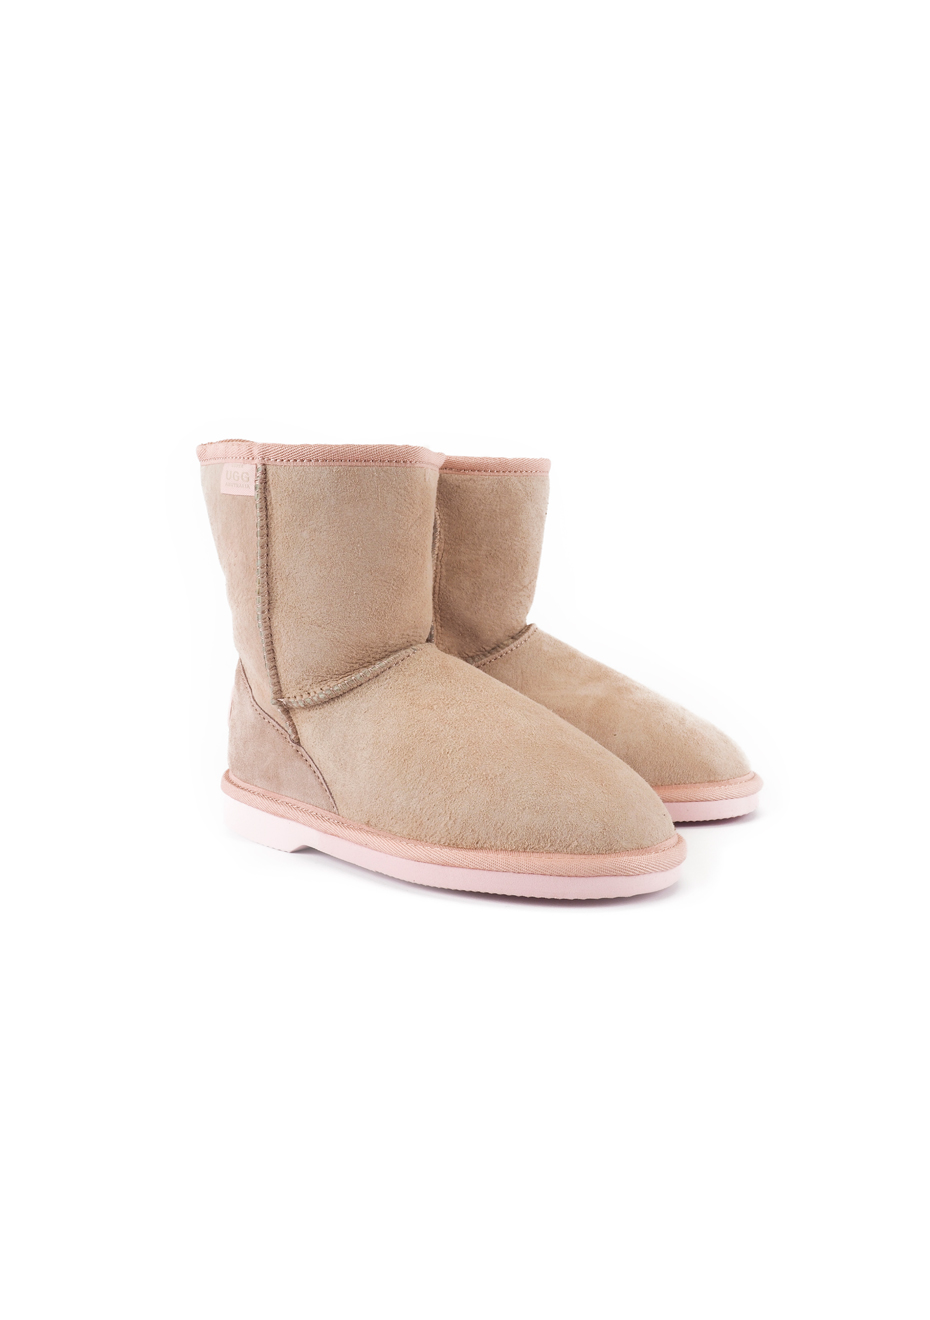 6071dbe56a2 To Sale Sheepskin 70 On Rugs Yellow Uggs And Earth Onceit Up Off ...